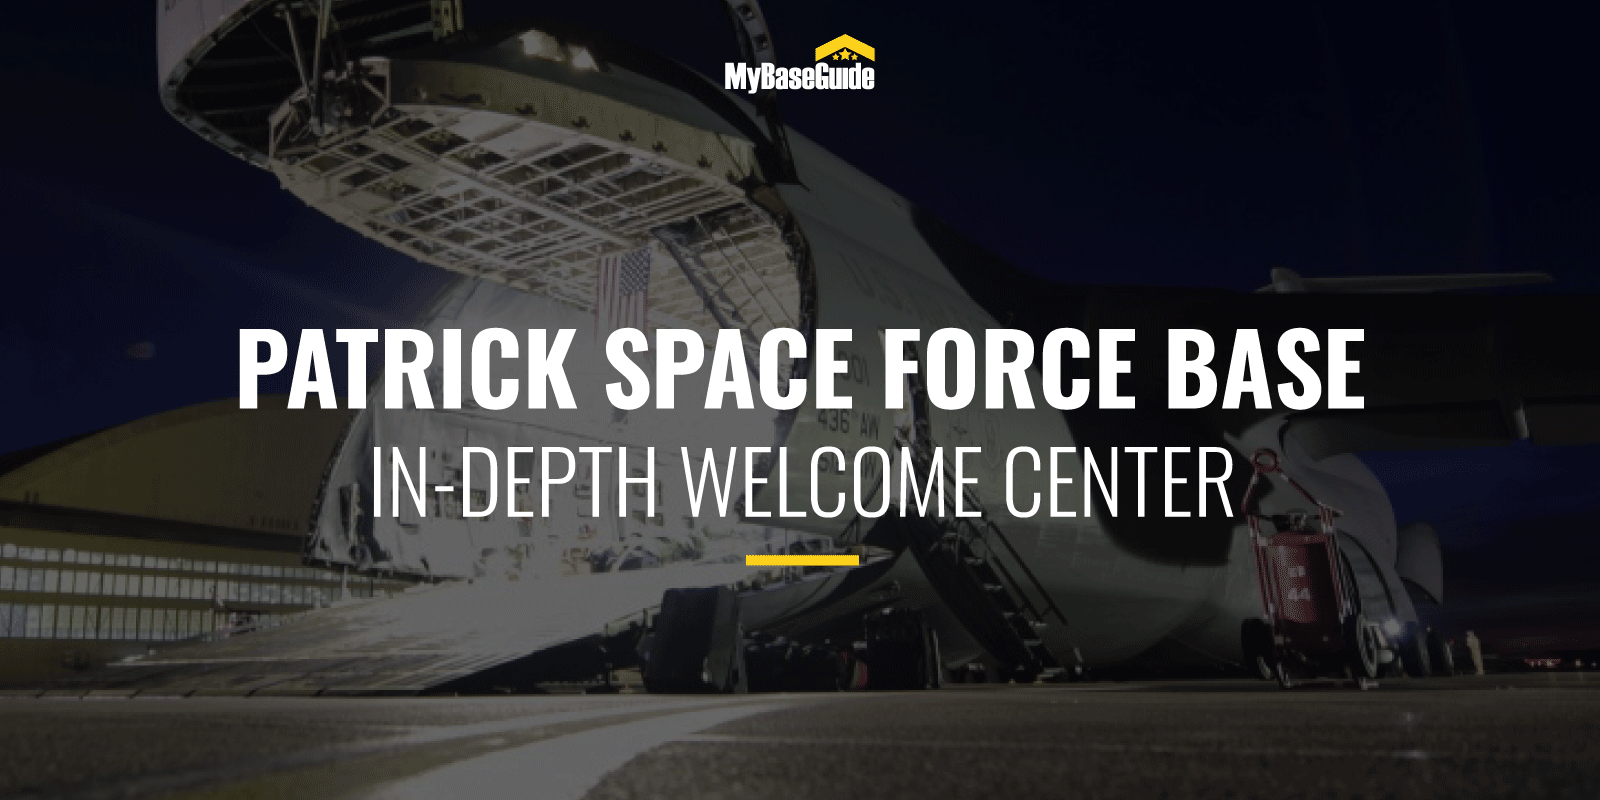 Patrick AFB Welcome Center (Now Patrick Space Force Base)